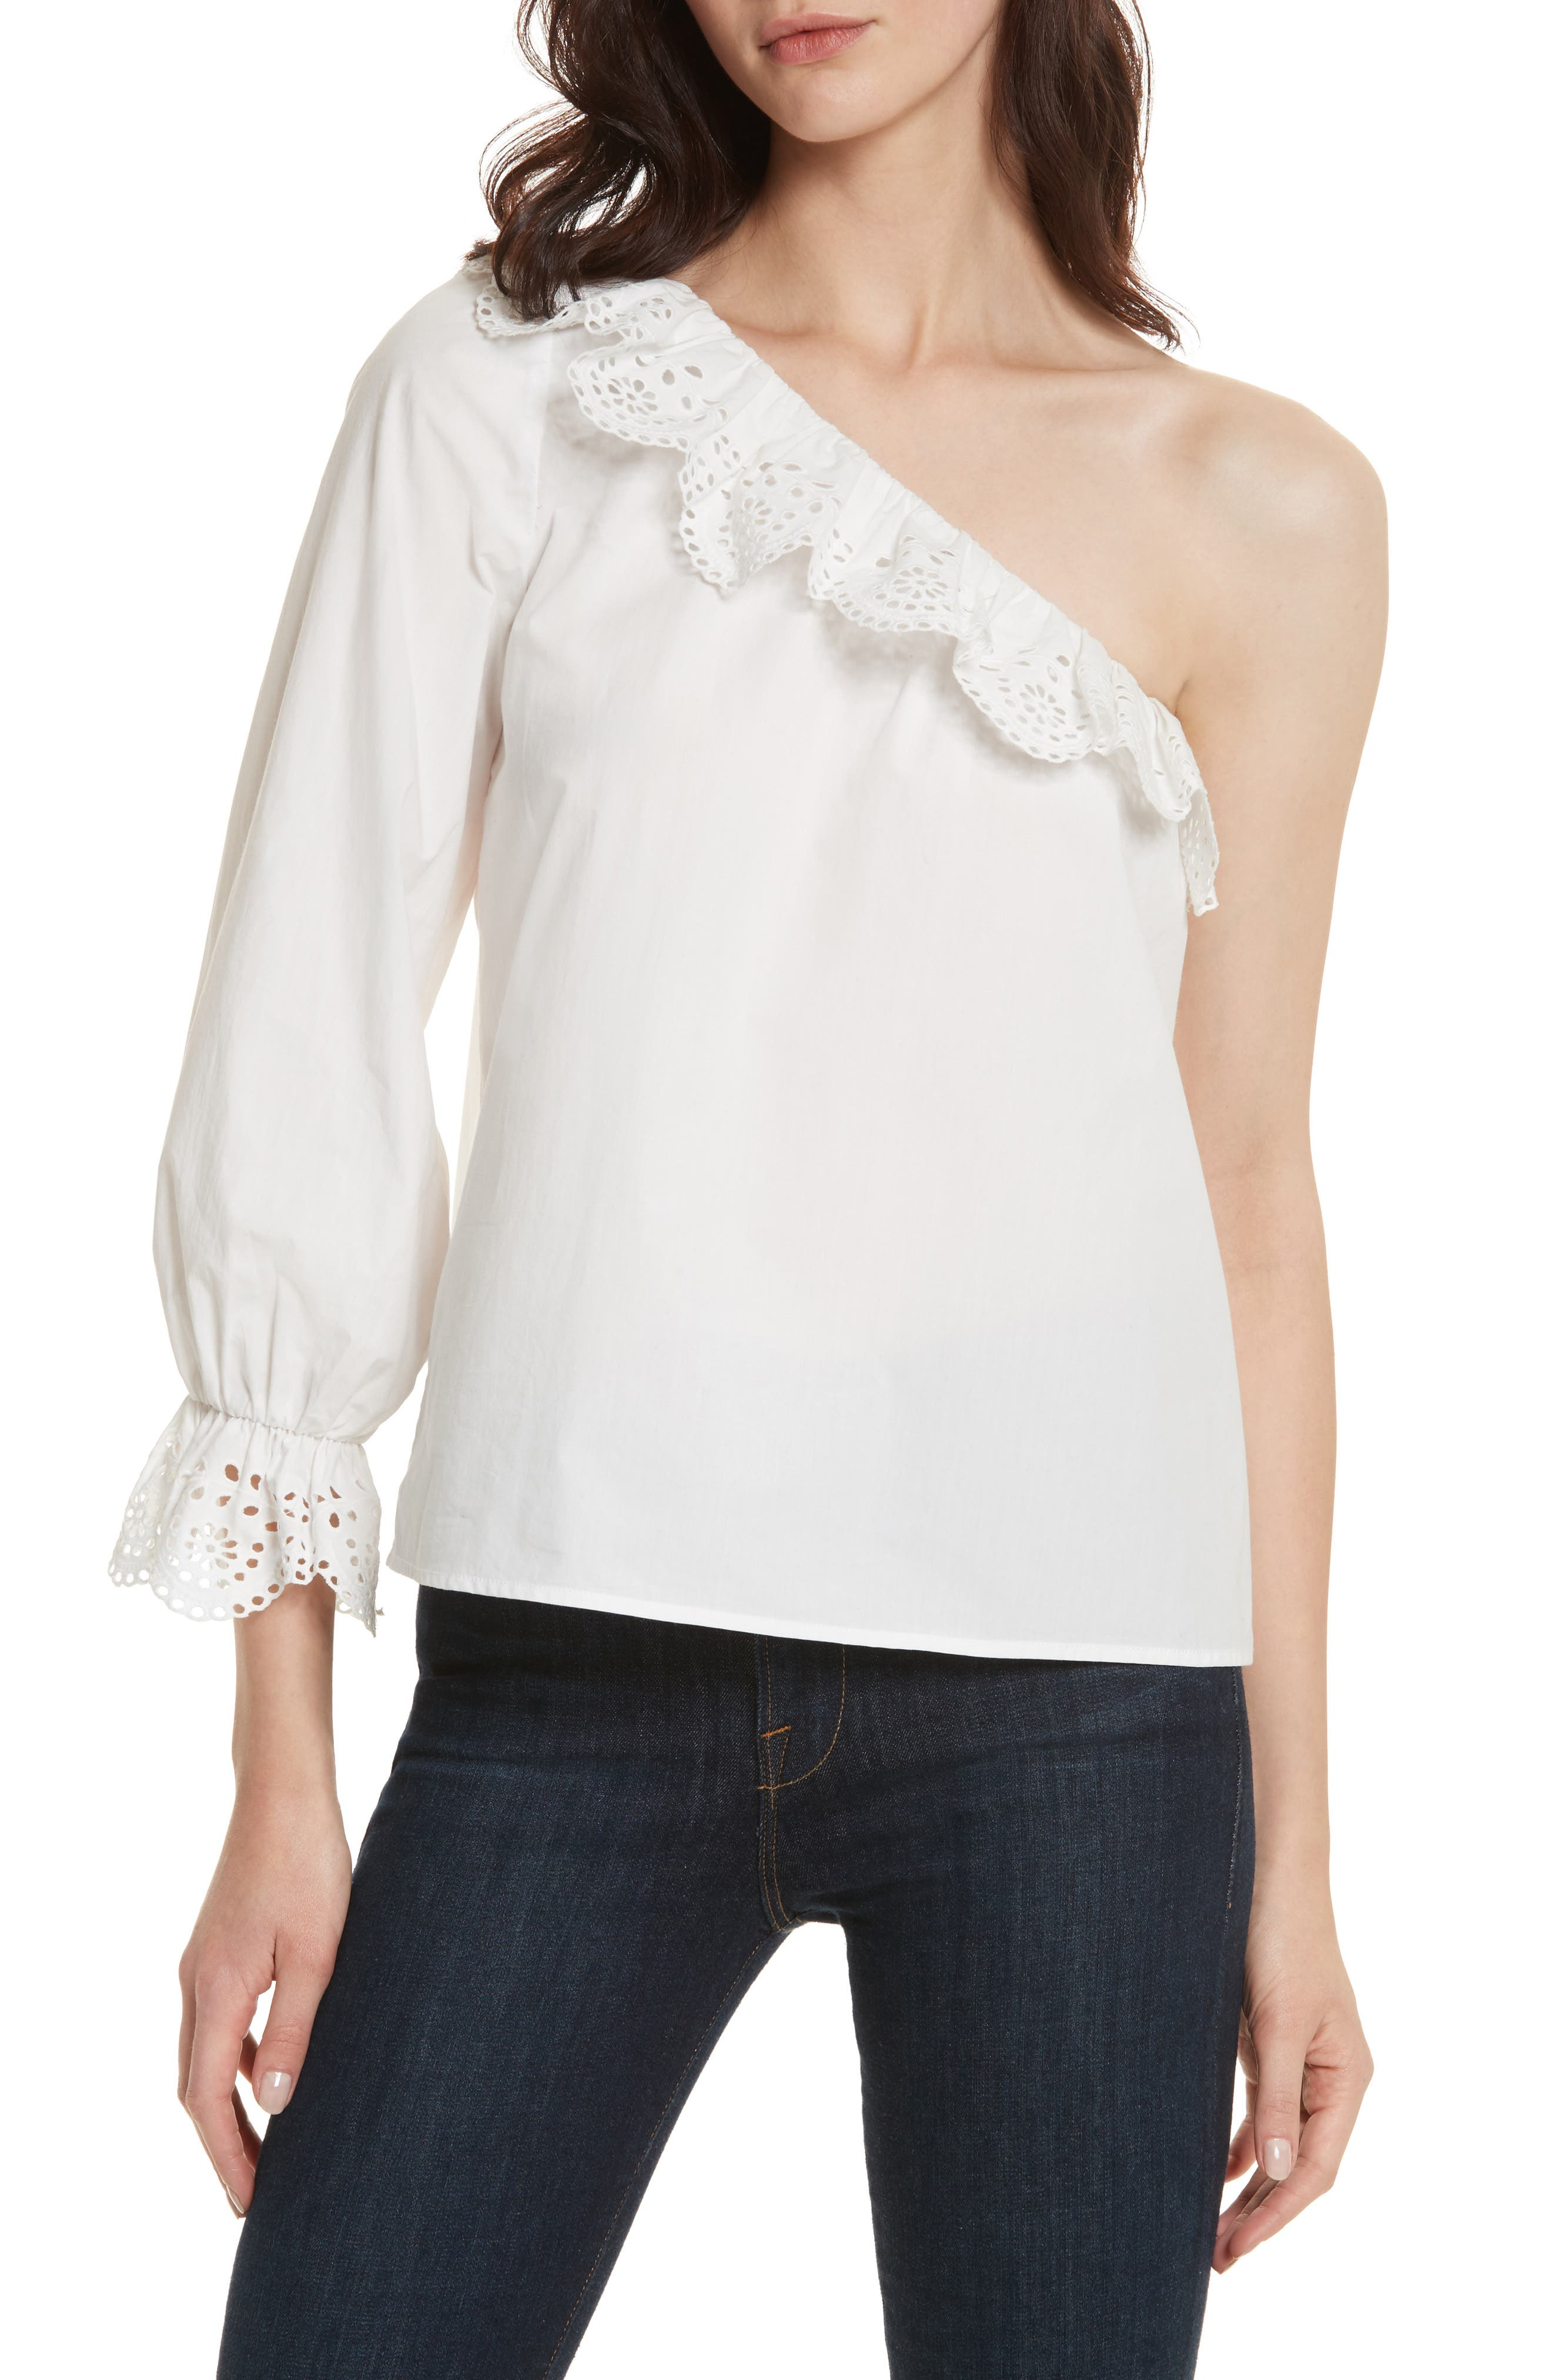 Main Image - Joie Arianthe One-Shoulder Eyelet Top